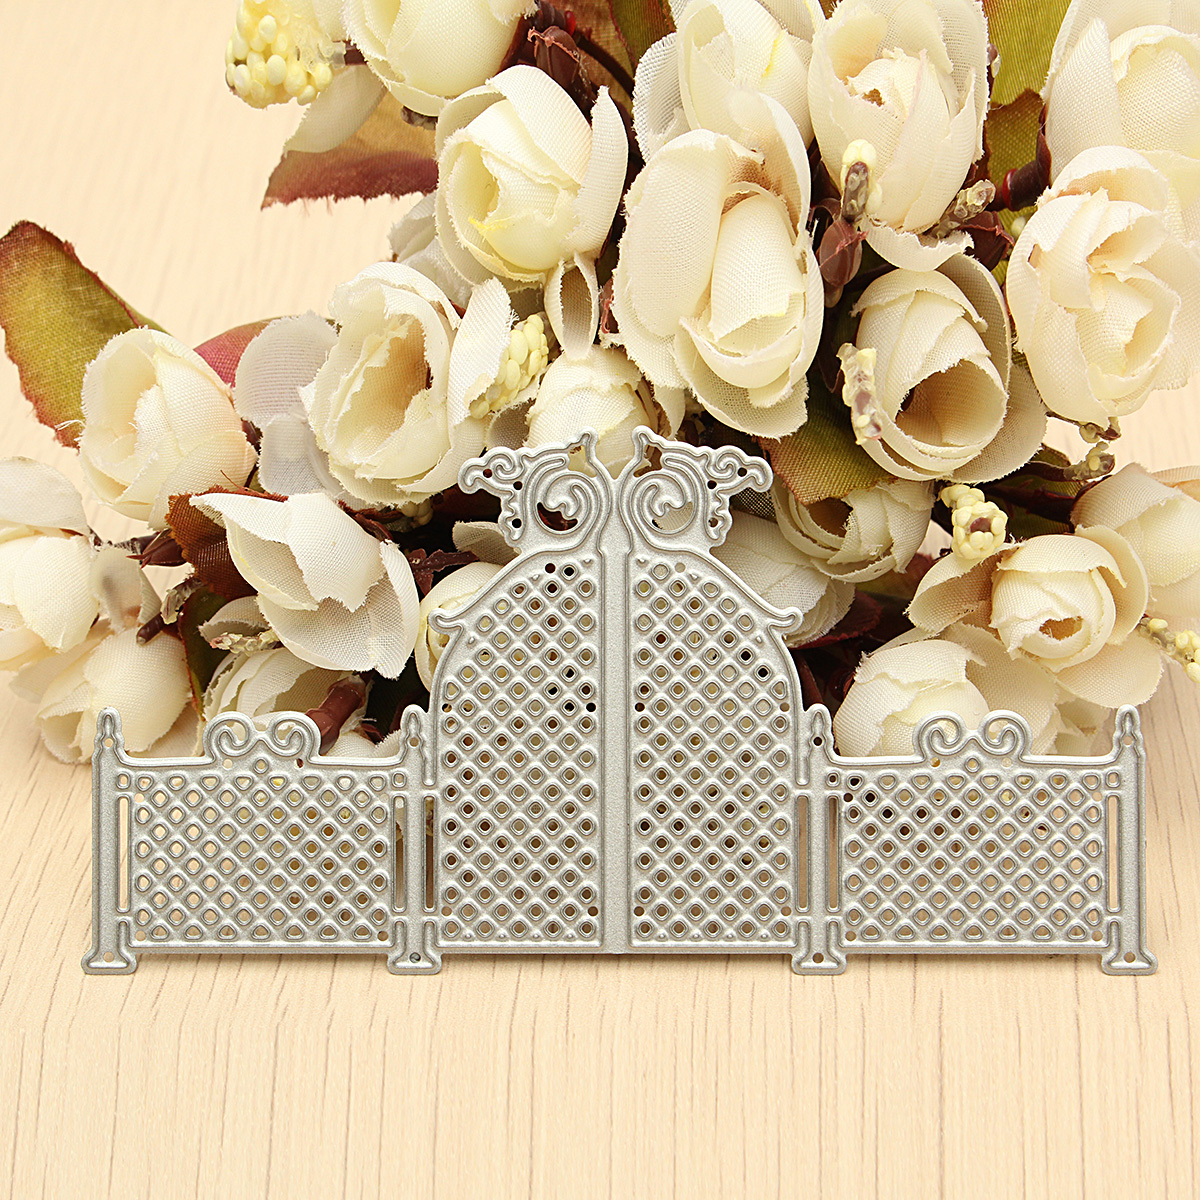 Hollow Door Pattern Metal Cutting Dies Stencil DIY Scrapbook Card Album S7